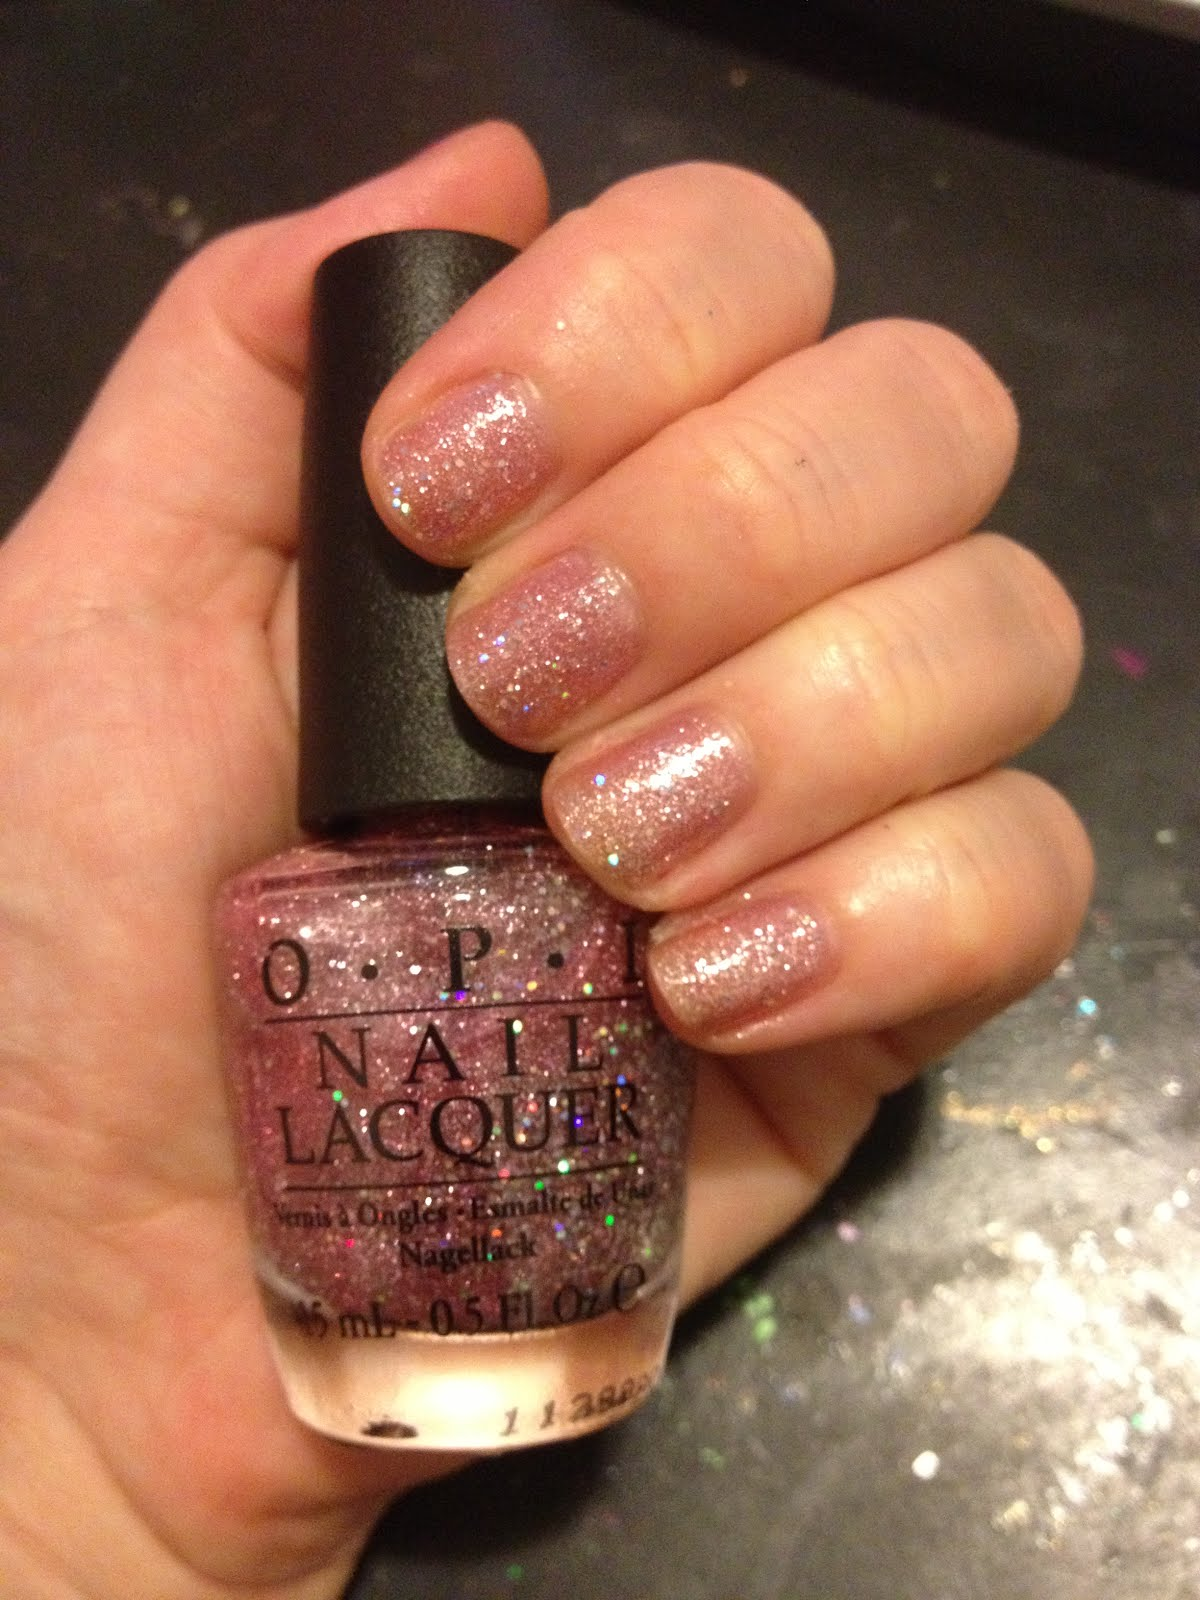 The Beauty of Life: Pretty in Pink: OPI Katy Perry Collection ...